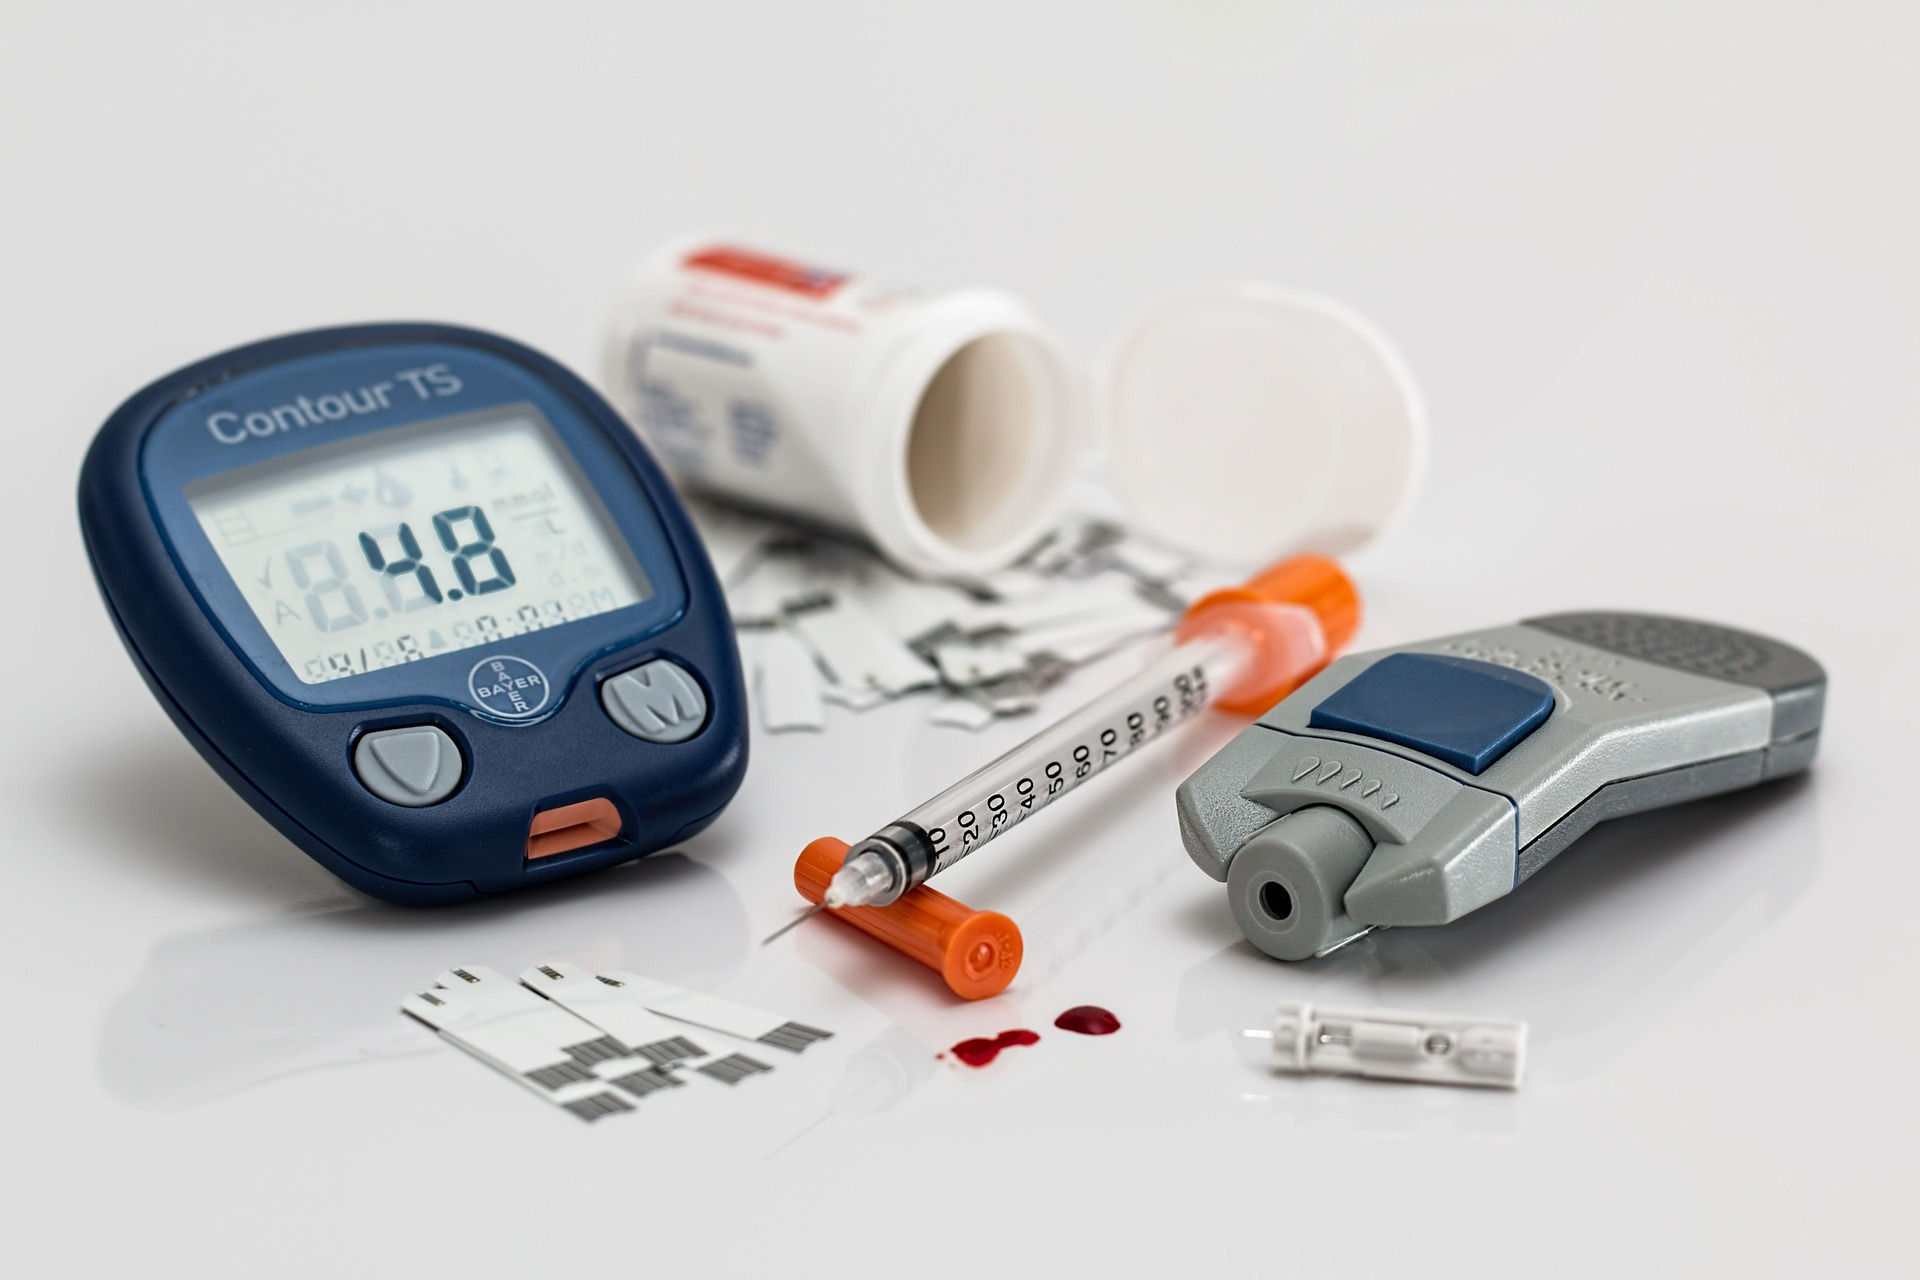 New JDRF Call: Safe and Effective Use of SGLT Inhibitors for Type 1 Diabetes